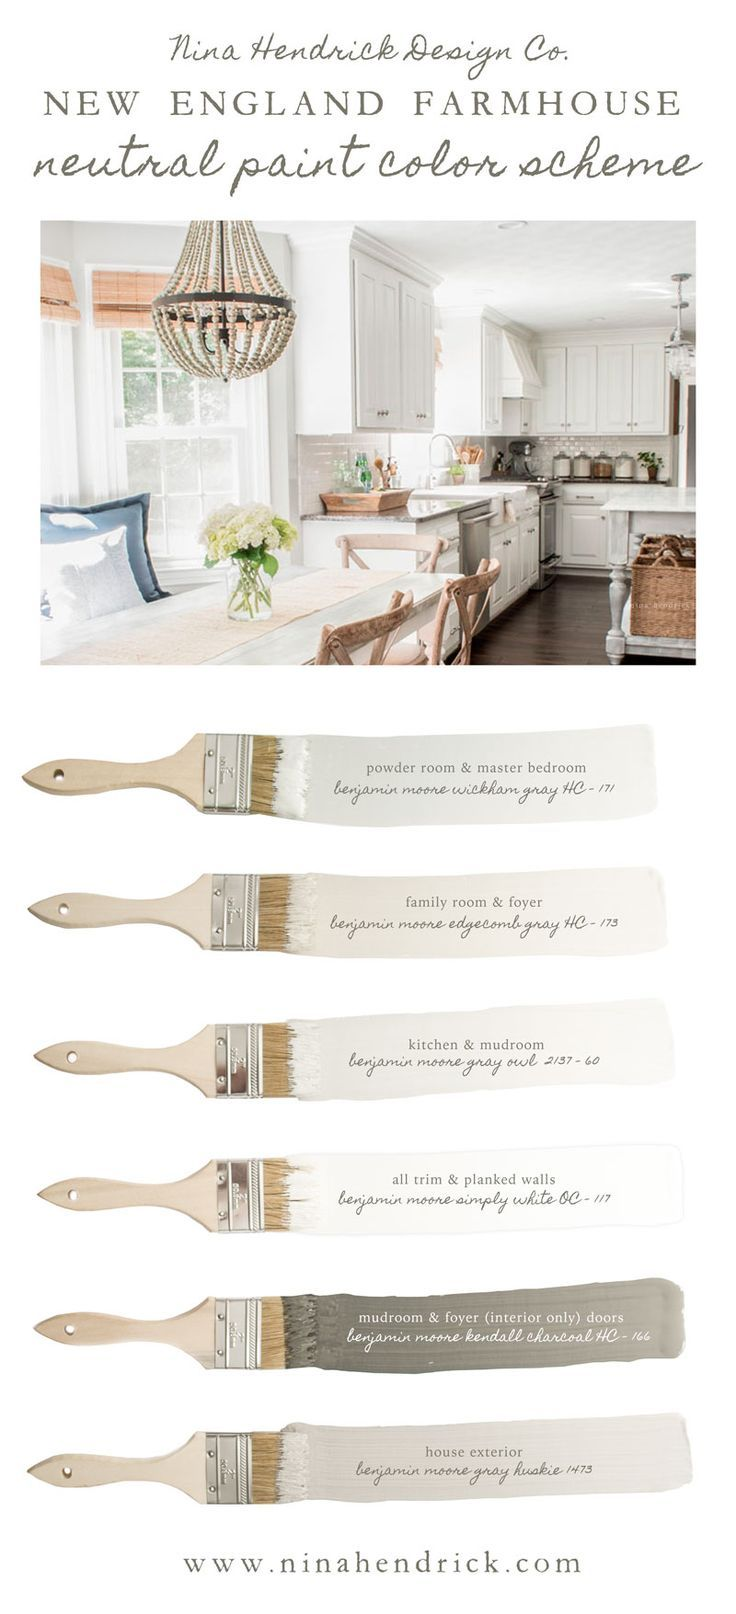 Nina Hendrick Design Co's New England Farmhouse Neutral Paint Color Scheme  | A neutral and soothing